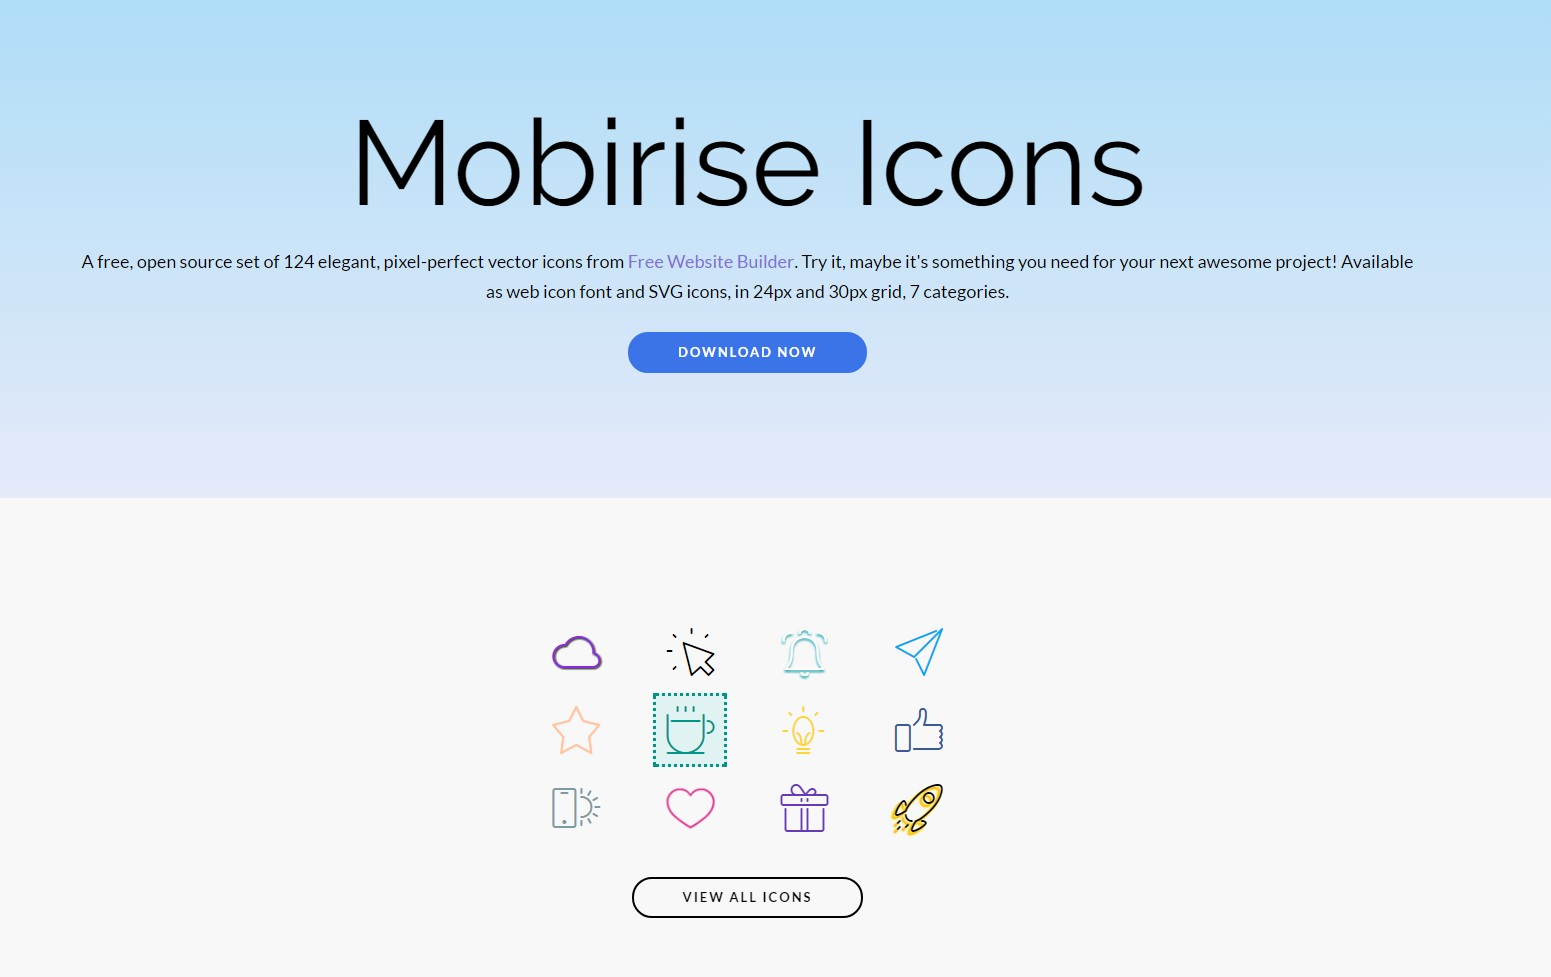 mobirise icons group